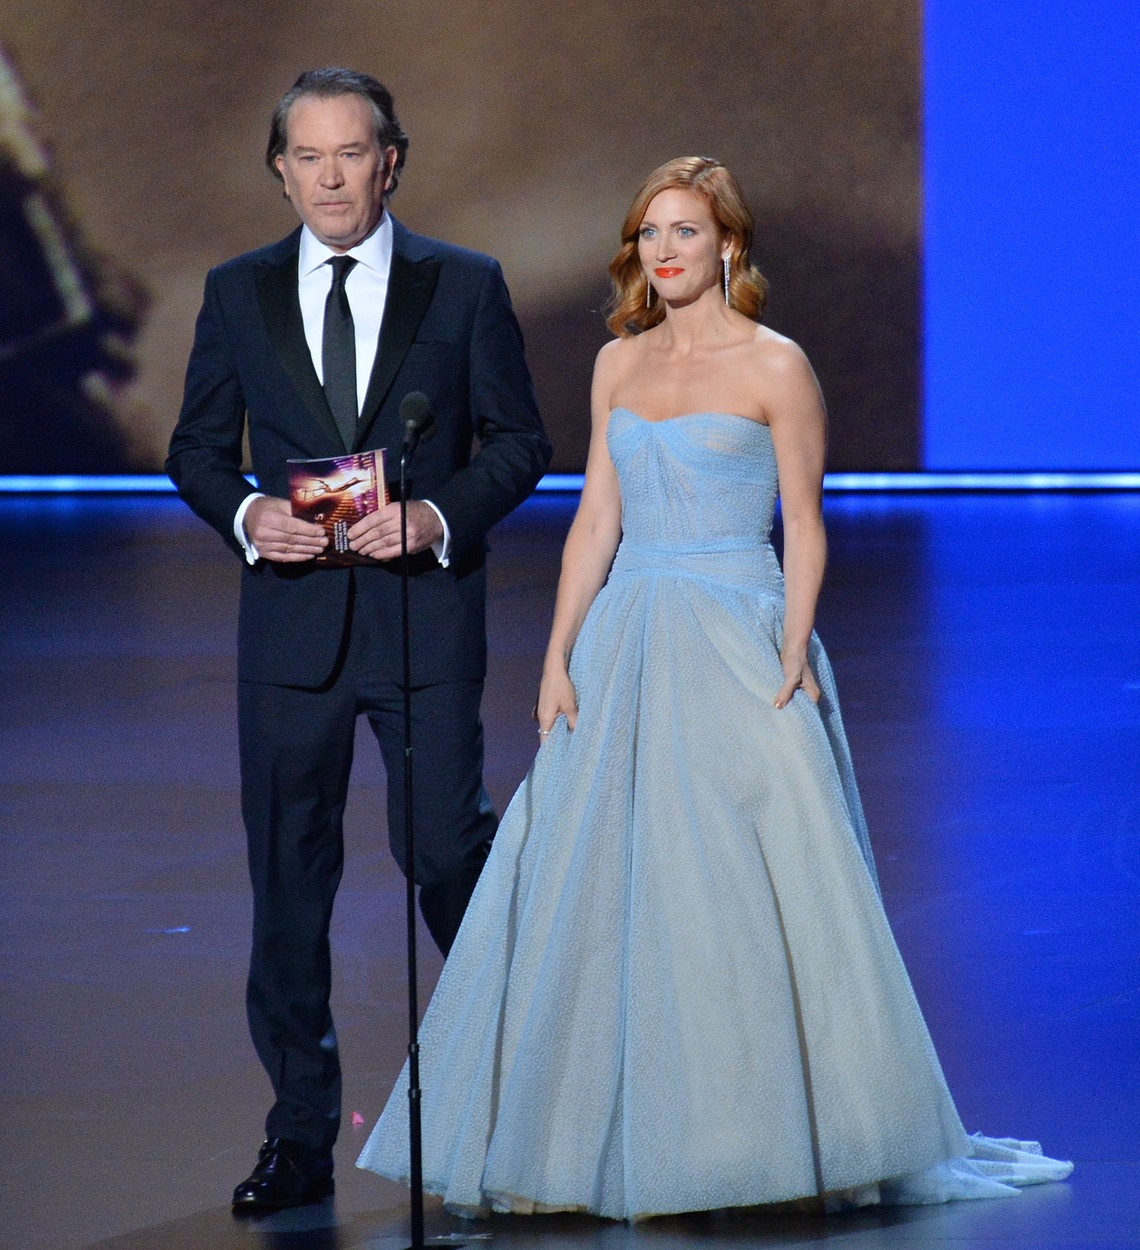 (L-R) Timothy Hutton and Brittany Snow appear onstage during the 71st annual Primetime Emmy Awards at the Microsoft Theater in downtown Los Angeles on Sunday, September 22, 2019. Photo by /UPI, Image: 472503348, License: Rights-managed, Restrictions: , Model Release: no, Credit line: JIM RUYMEN / UPI / Profimedia